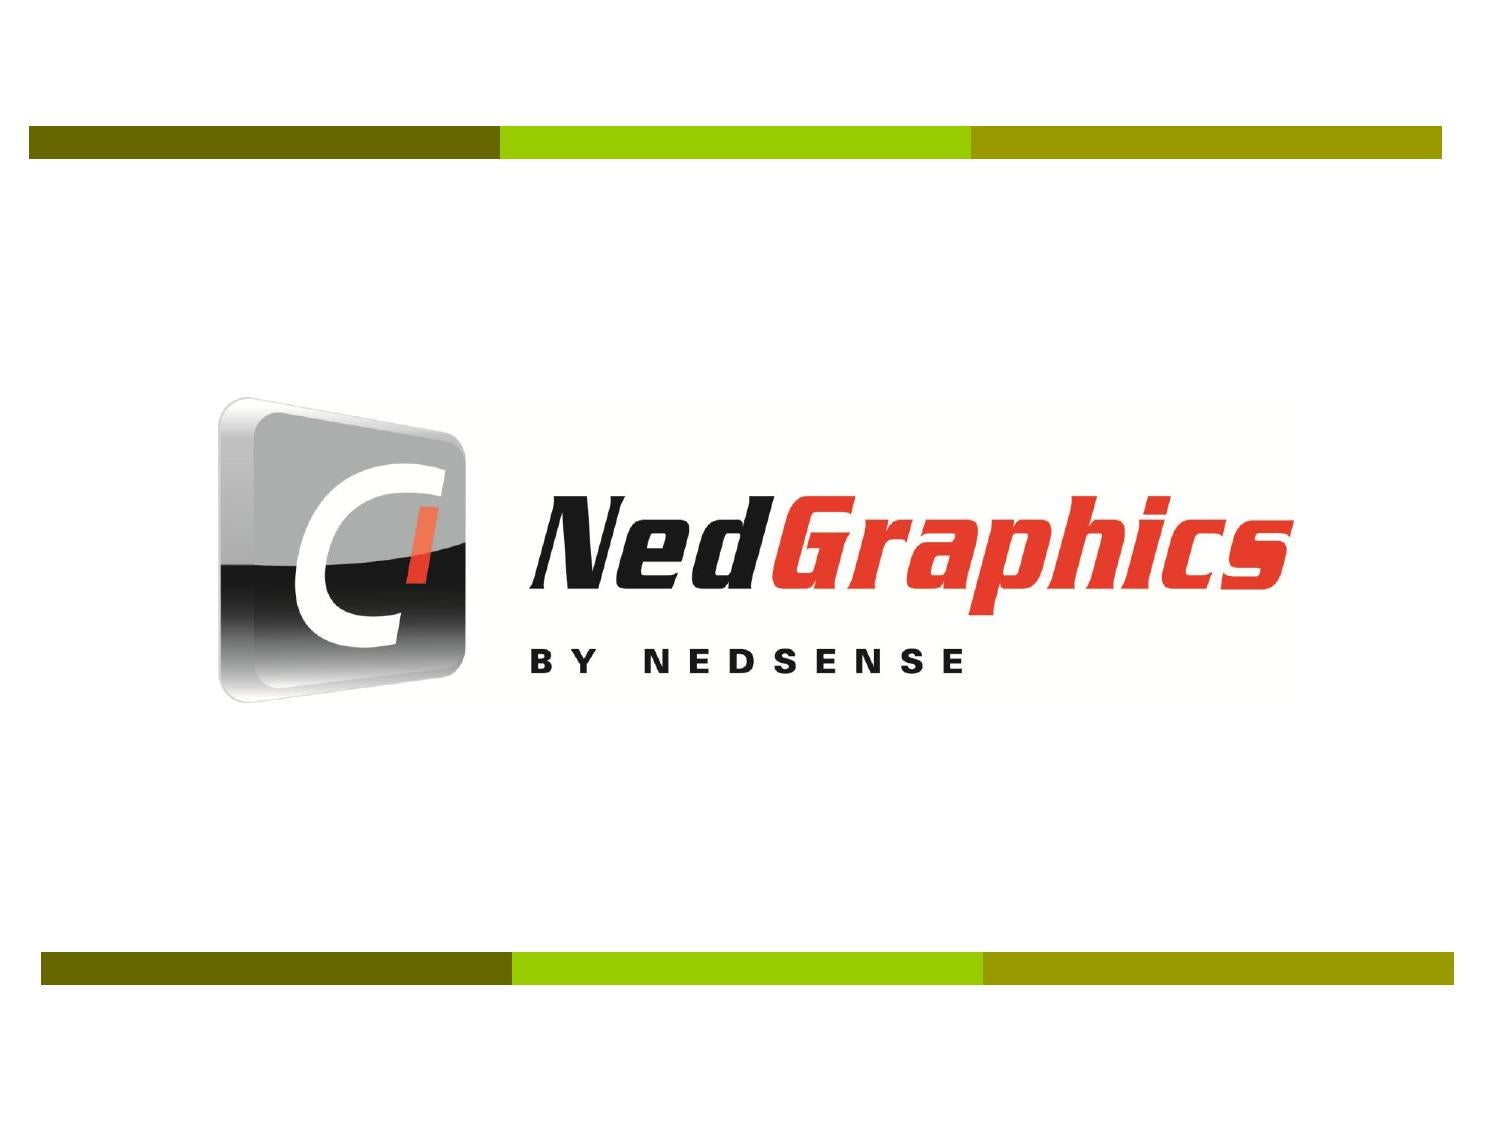 Nedgraphics Presentation By Eugenio Filippi Issuu